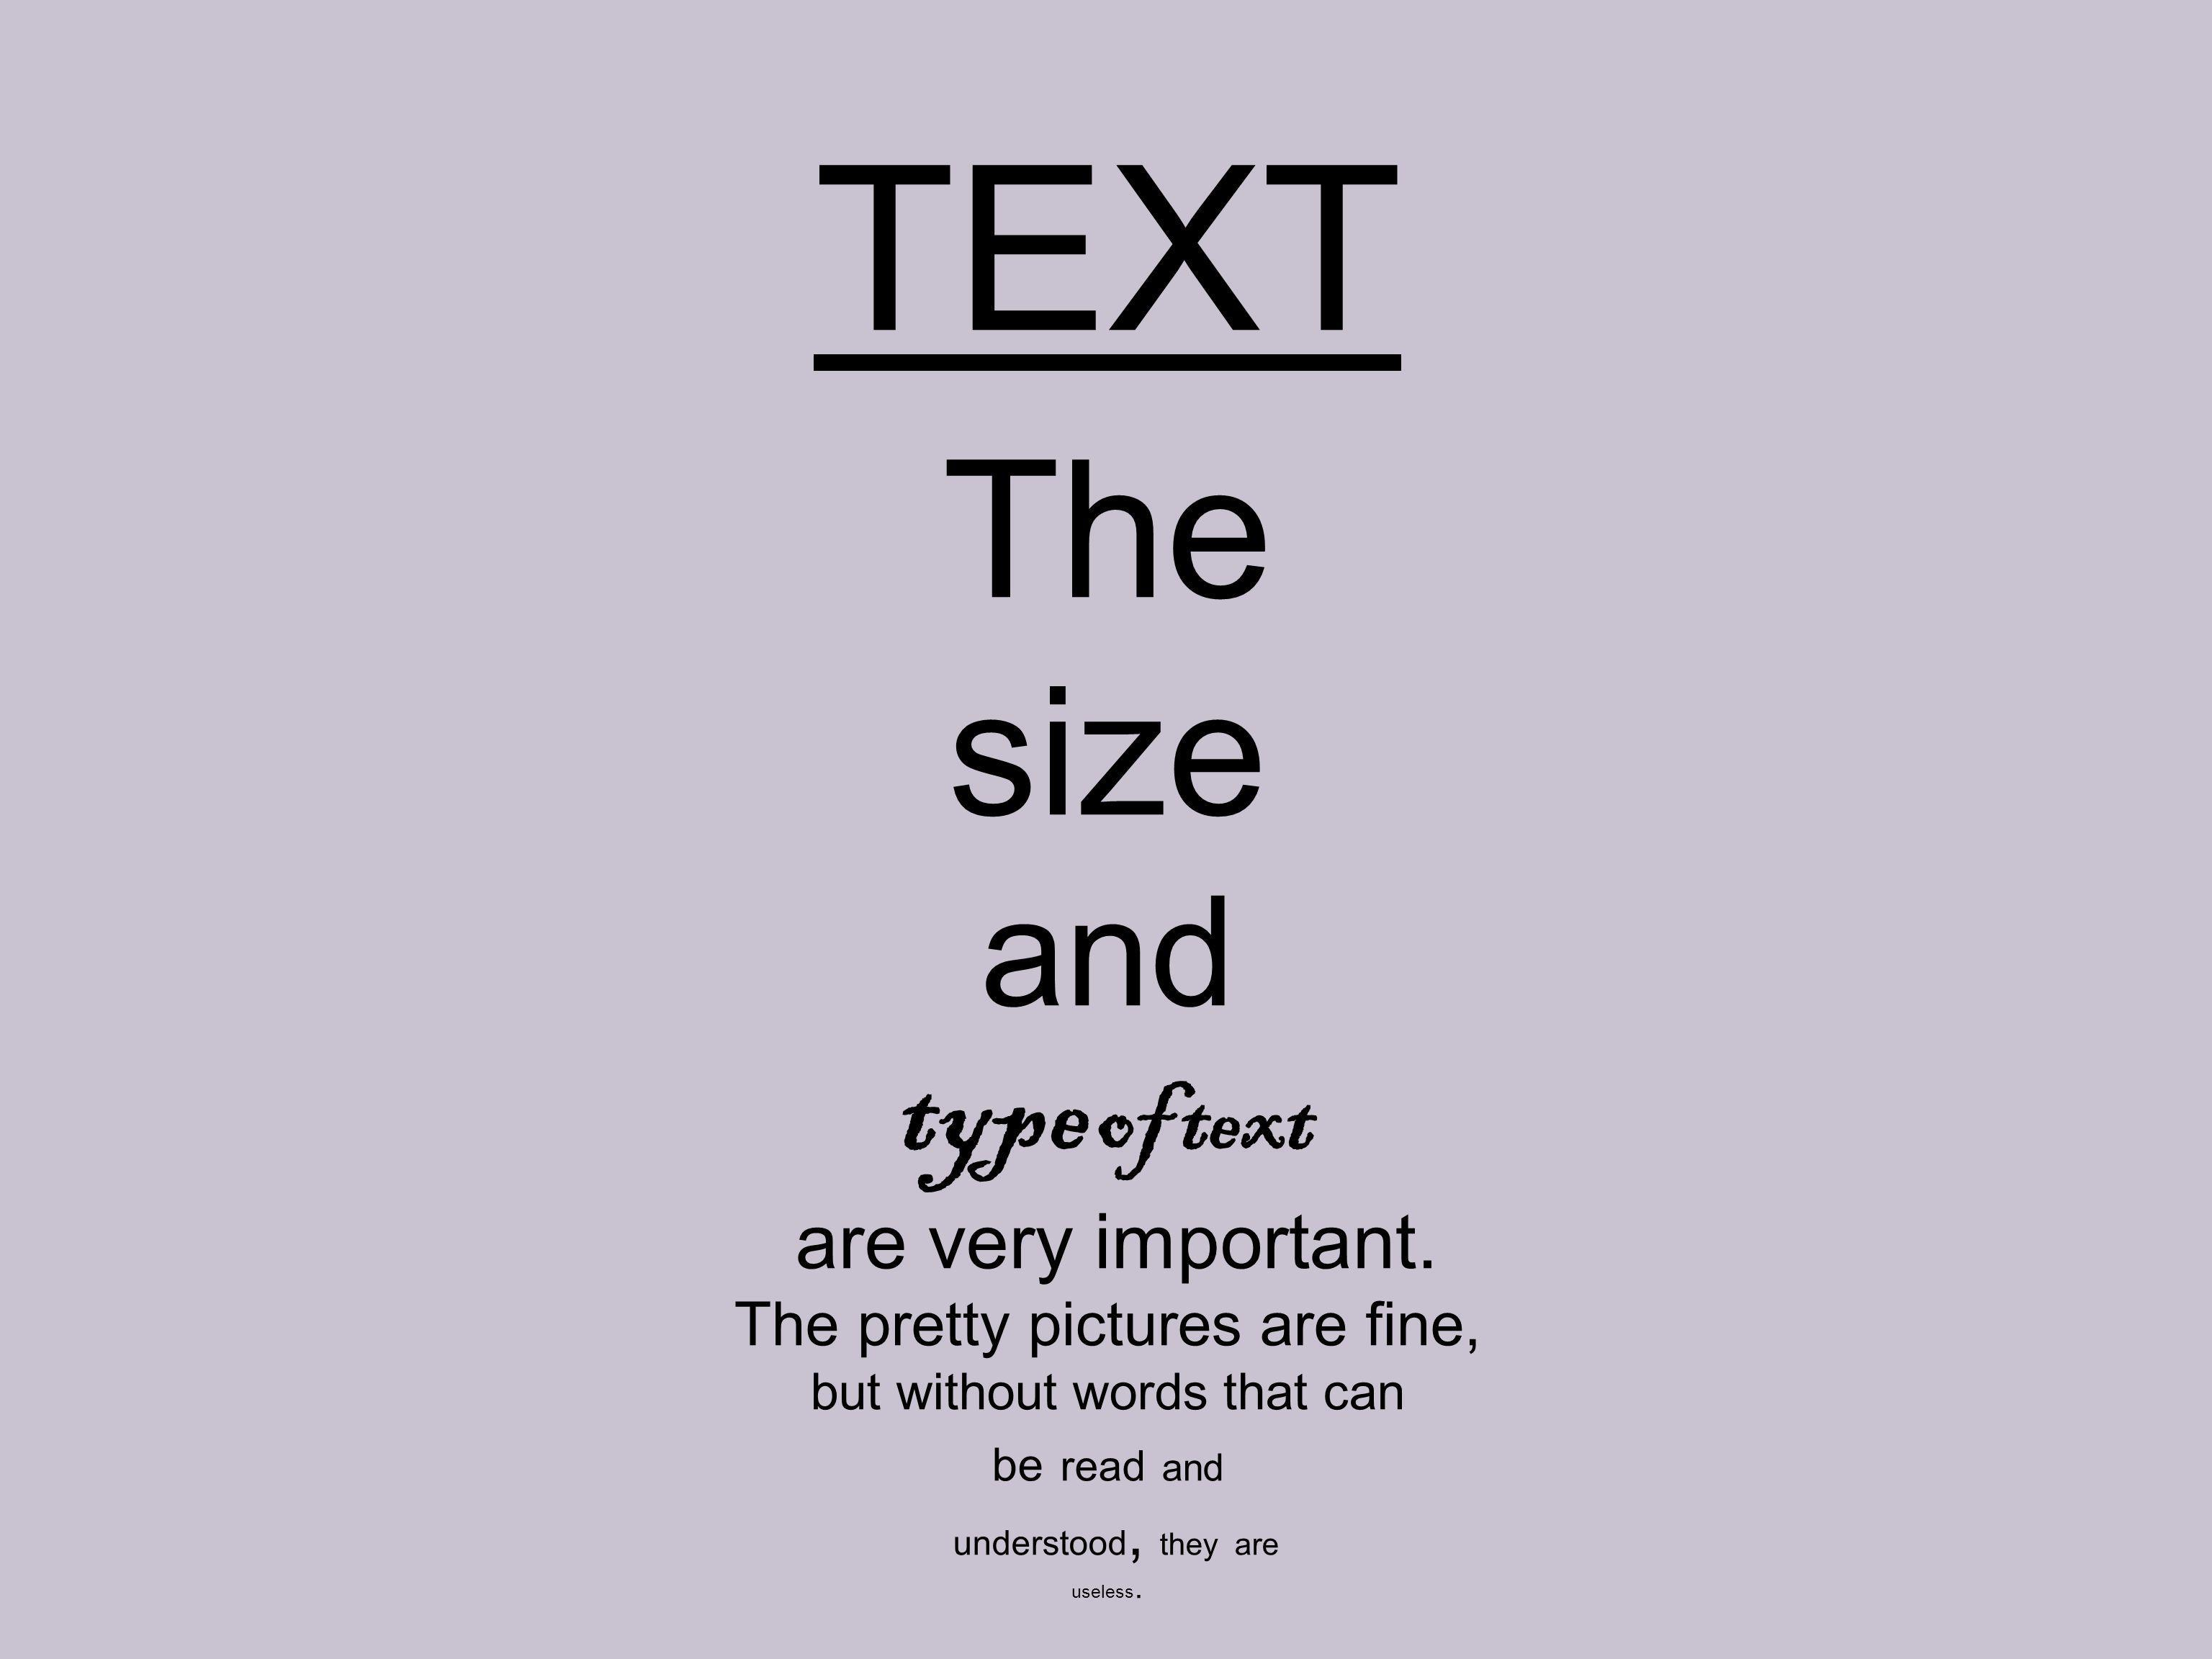 TEXT The size and type of text are very important. The pretty pictures are fine, but without words that can be read and understood, they are useless.